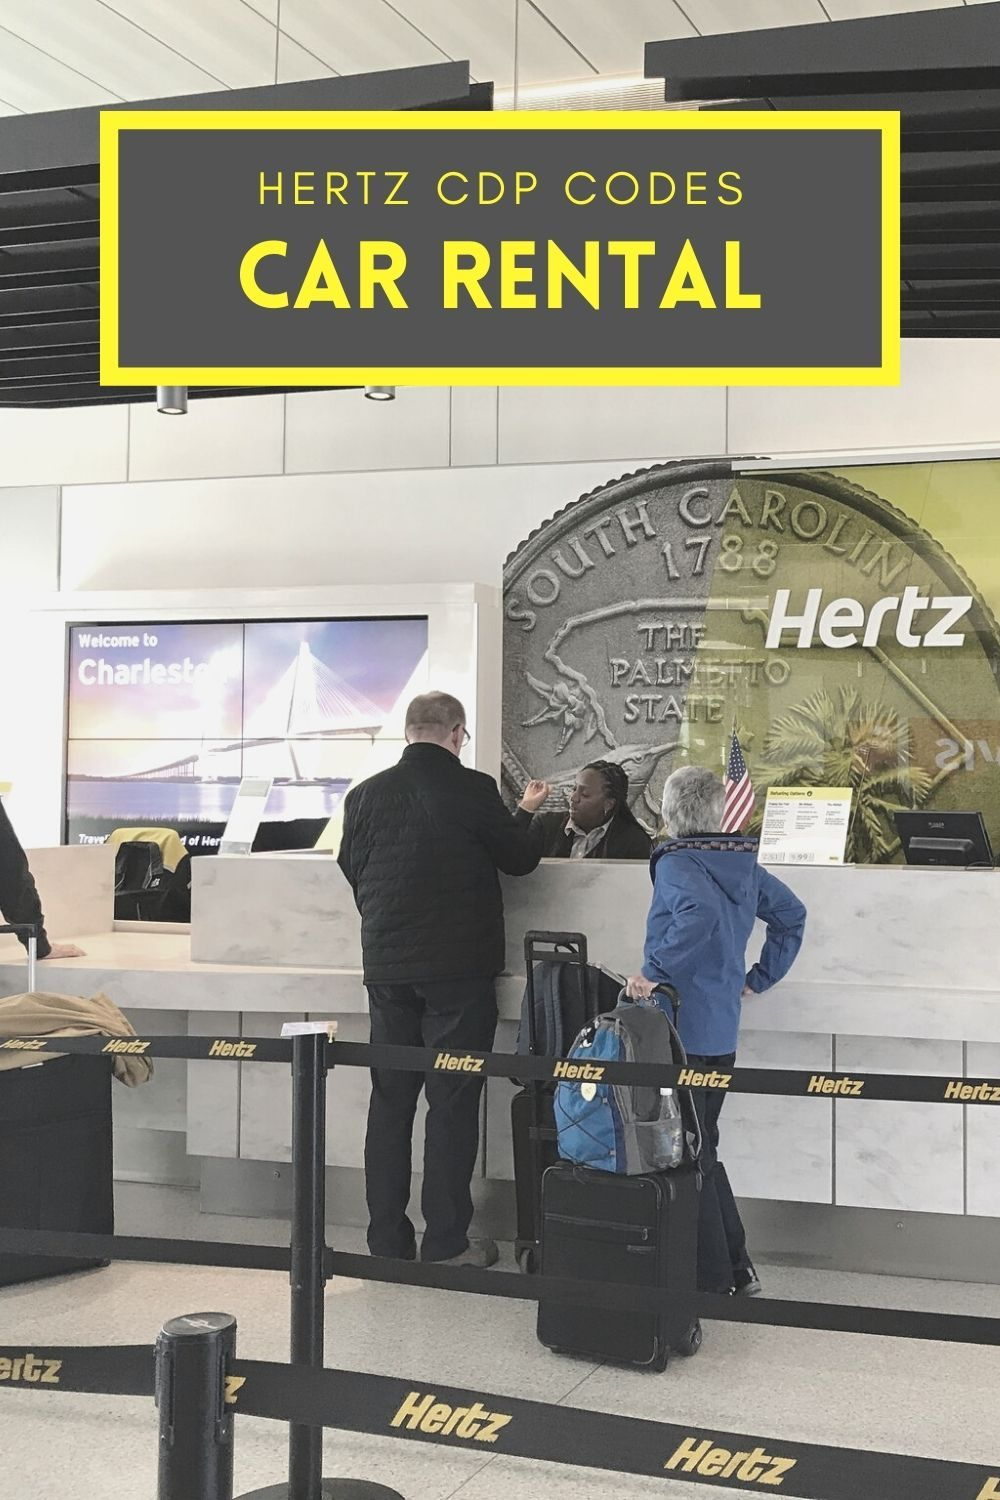 These are the best Hertz discount codes and CDP codes to use to make sure you get the best deal on your next car rental. #travelhacking #traveldeals #carrental